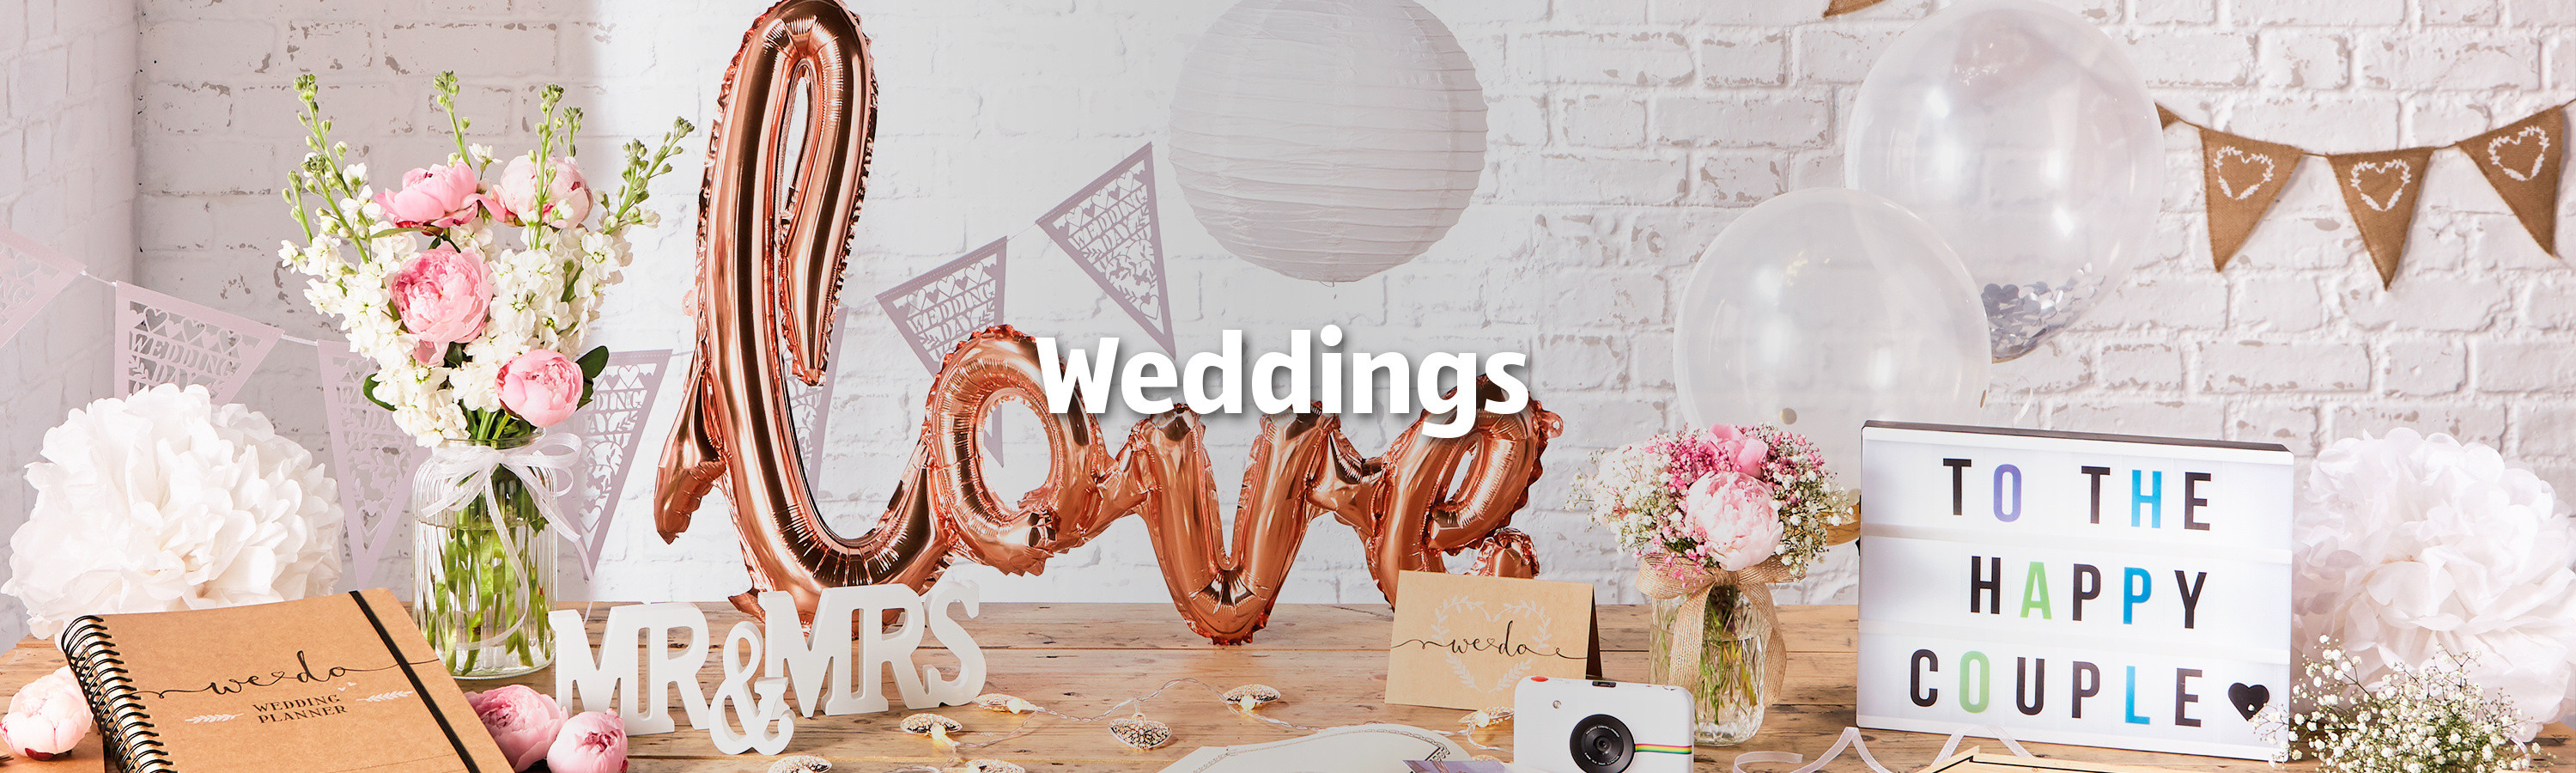 02441107597 All the wedding supplies you need to make the big day amazing